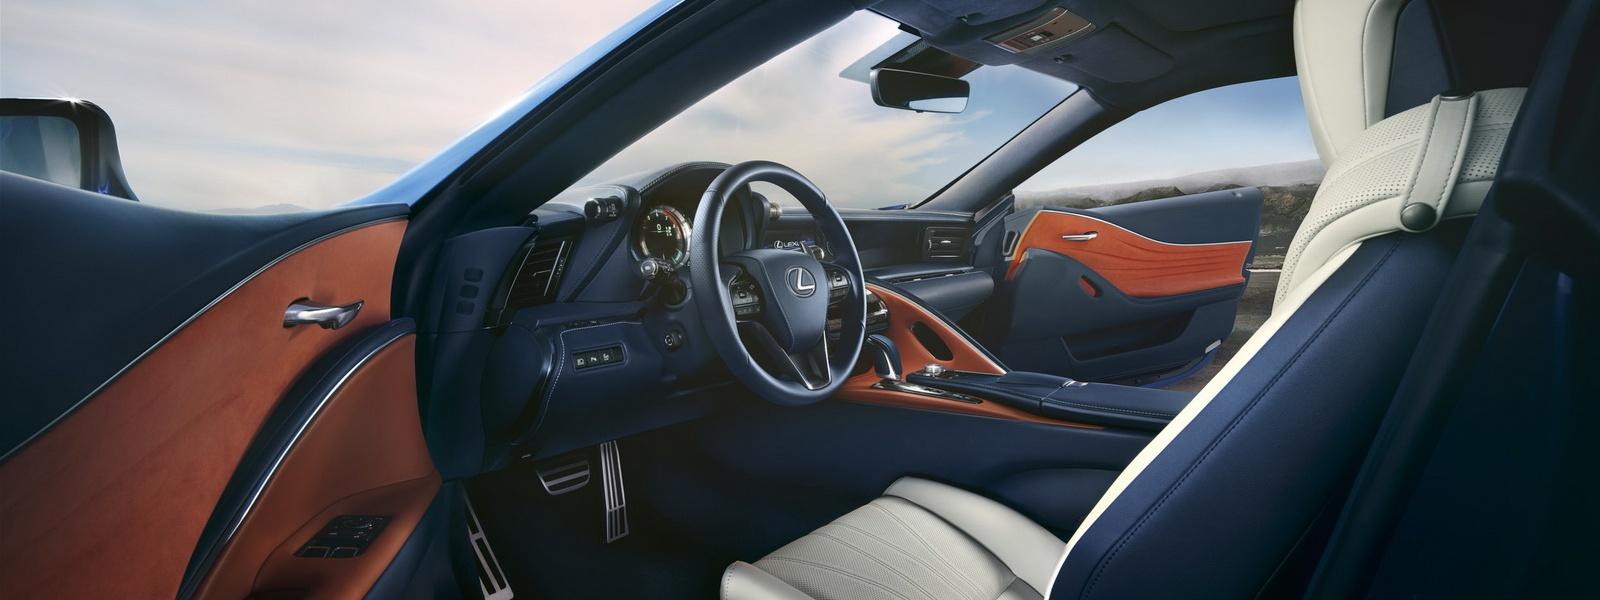 2018-lexus-lc-structural-blue-edition-11.jpg